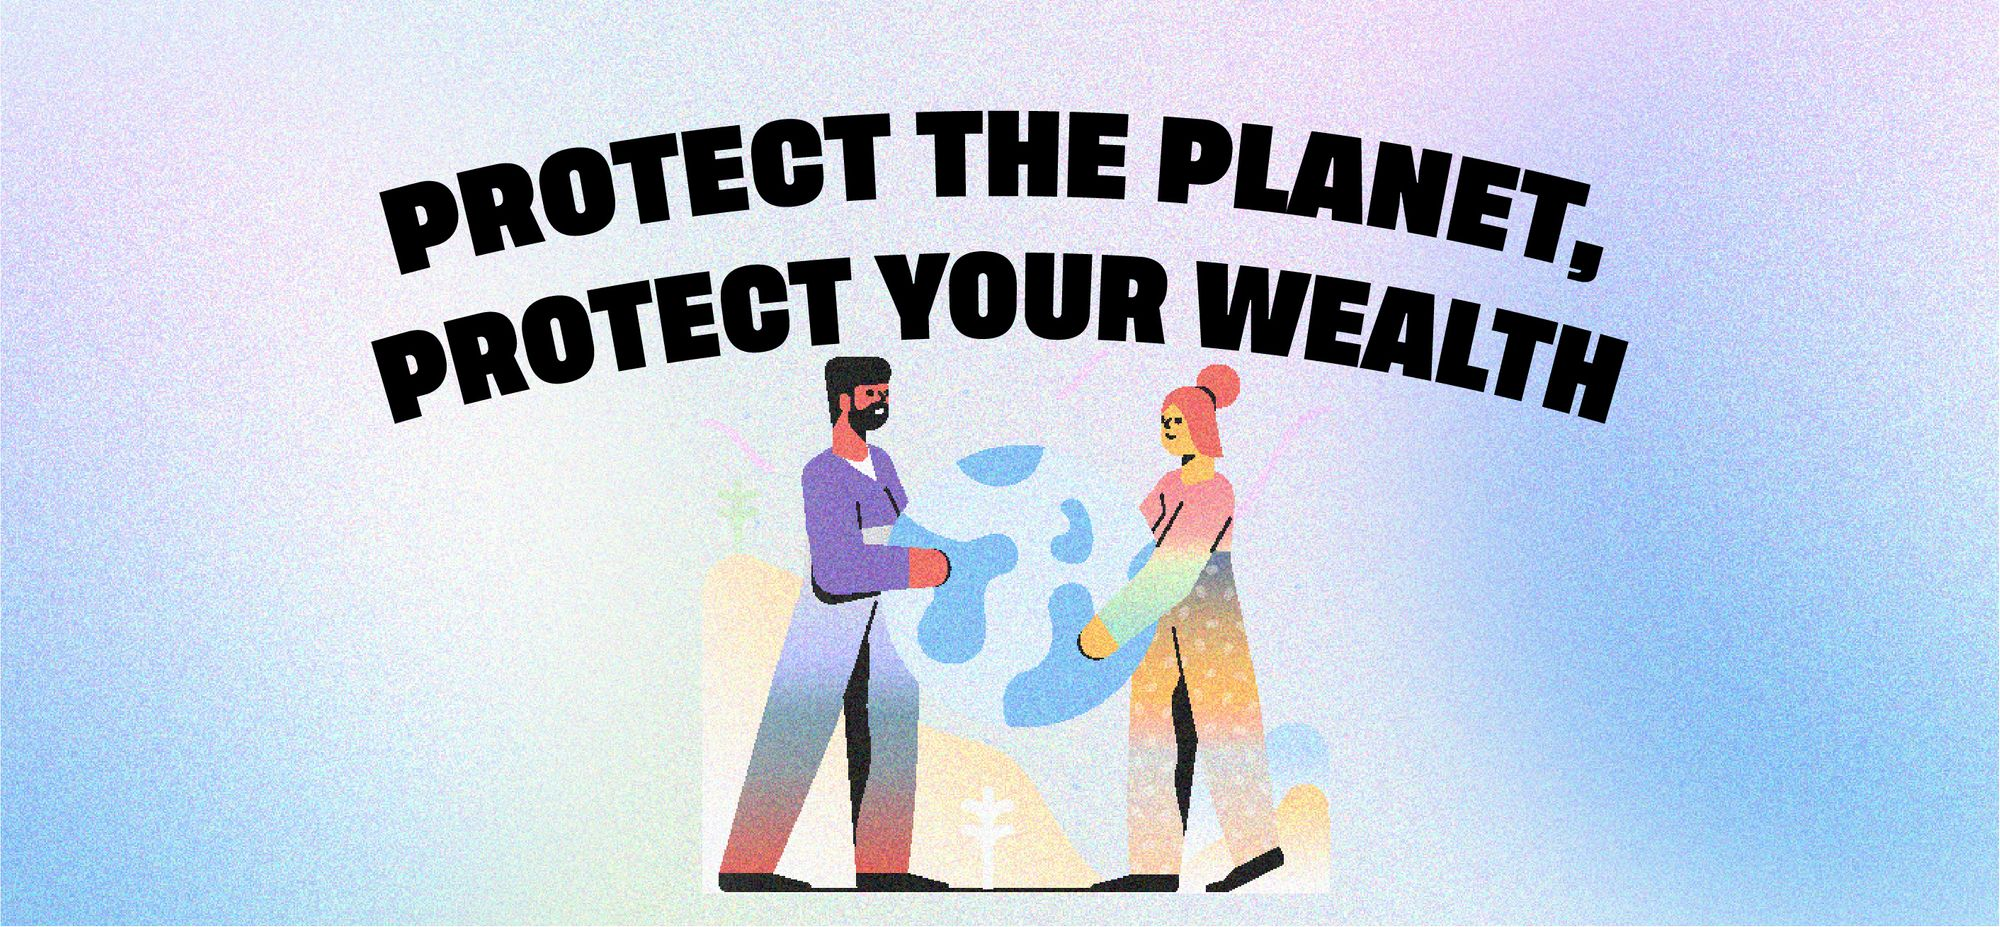 Protect the planet, protect your wealth.